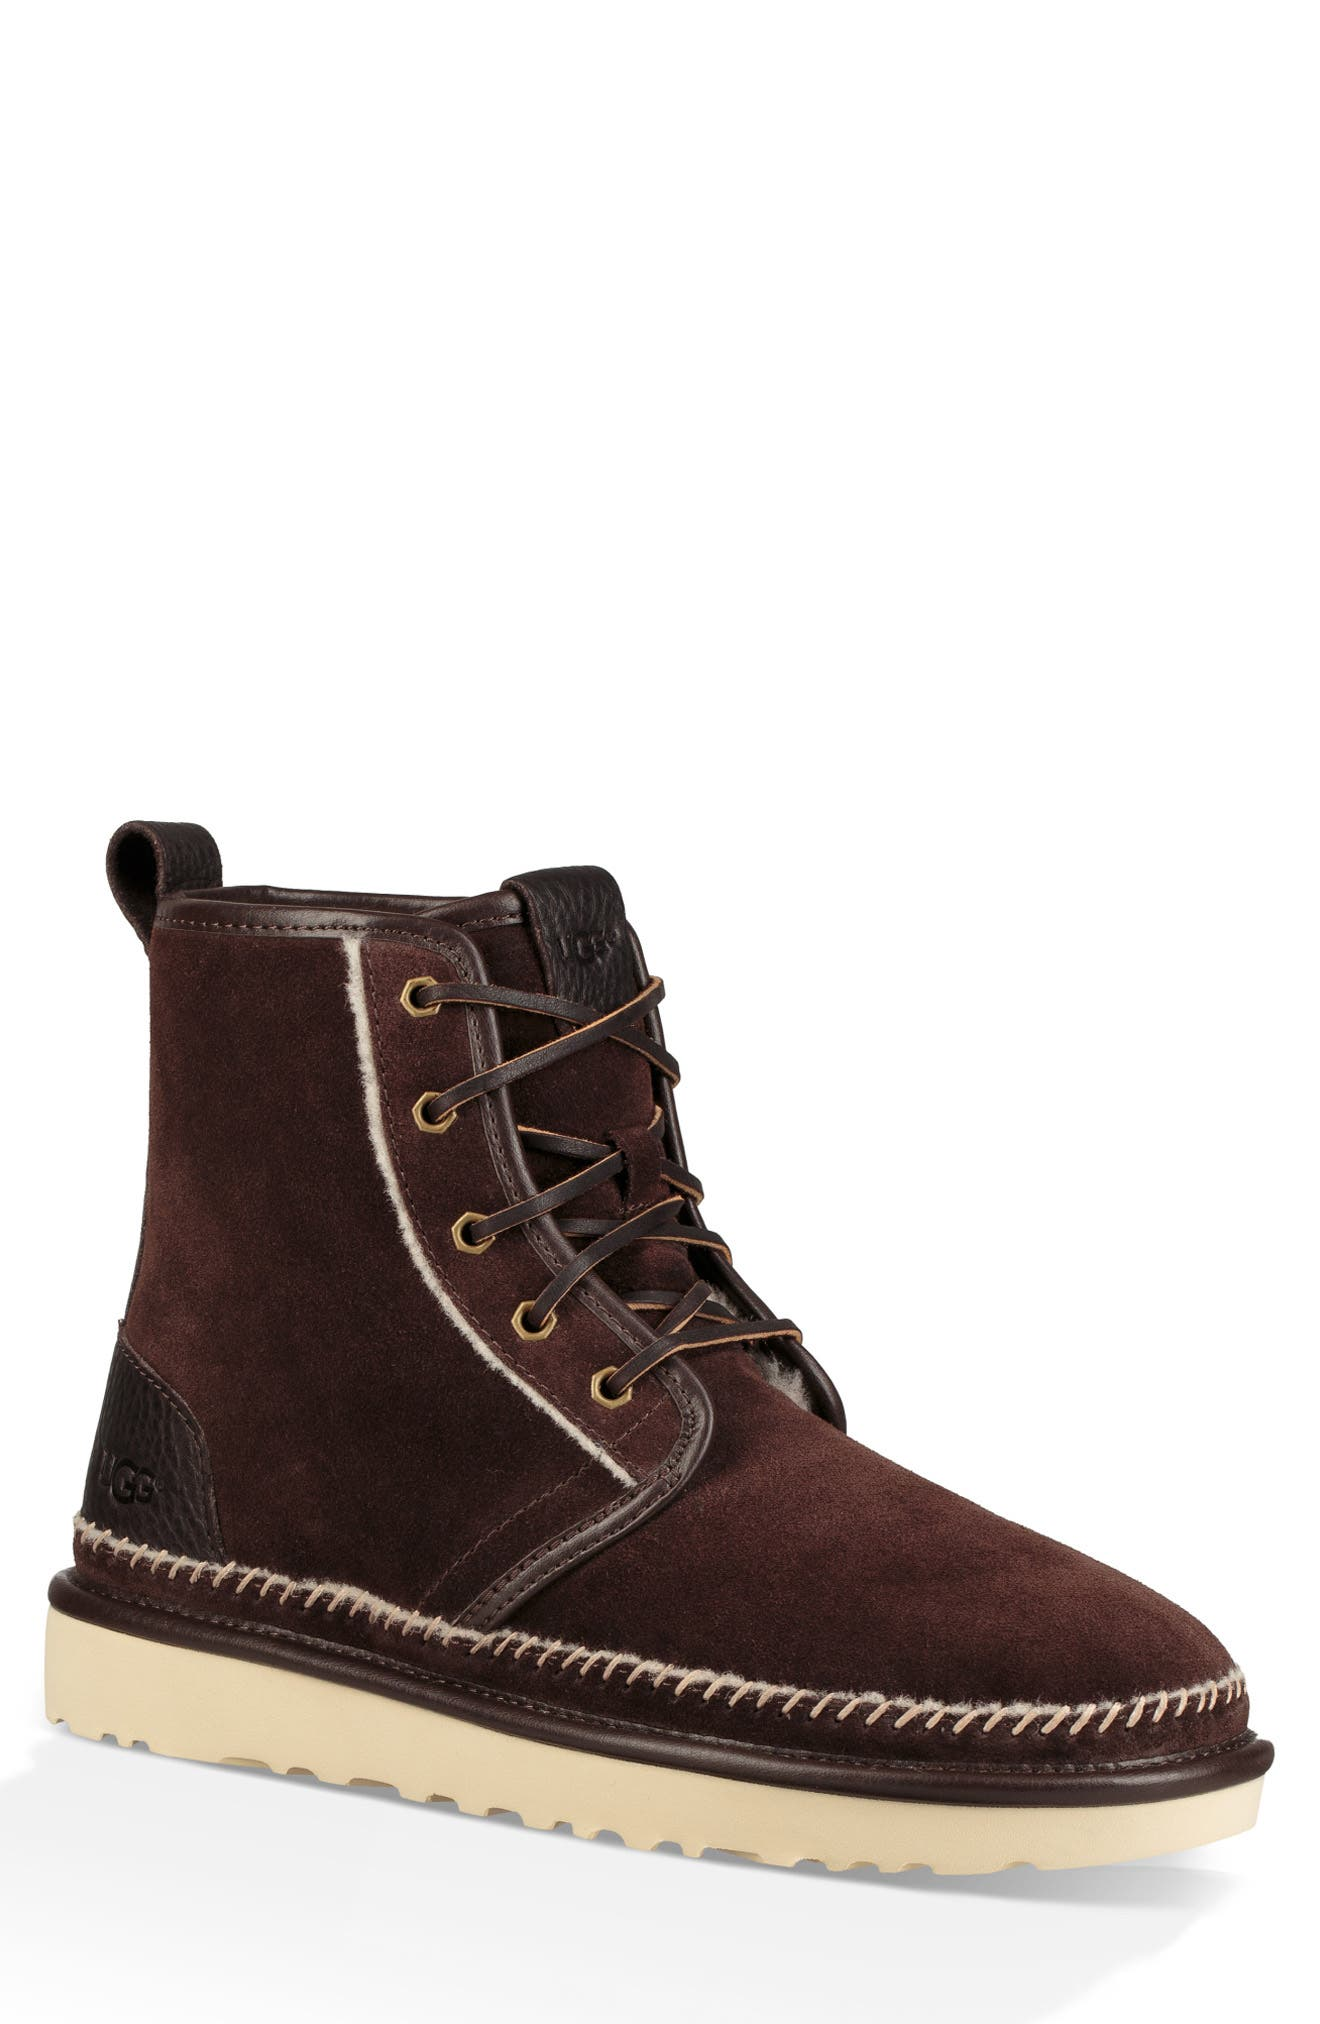 Men'S Harkley Suede Boots in Stout